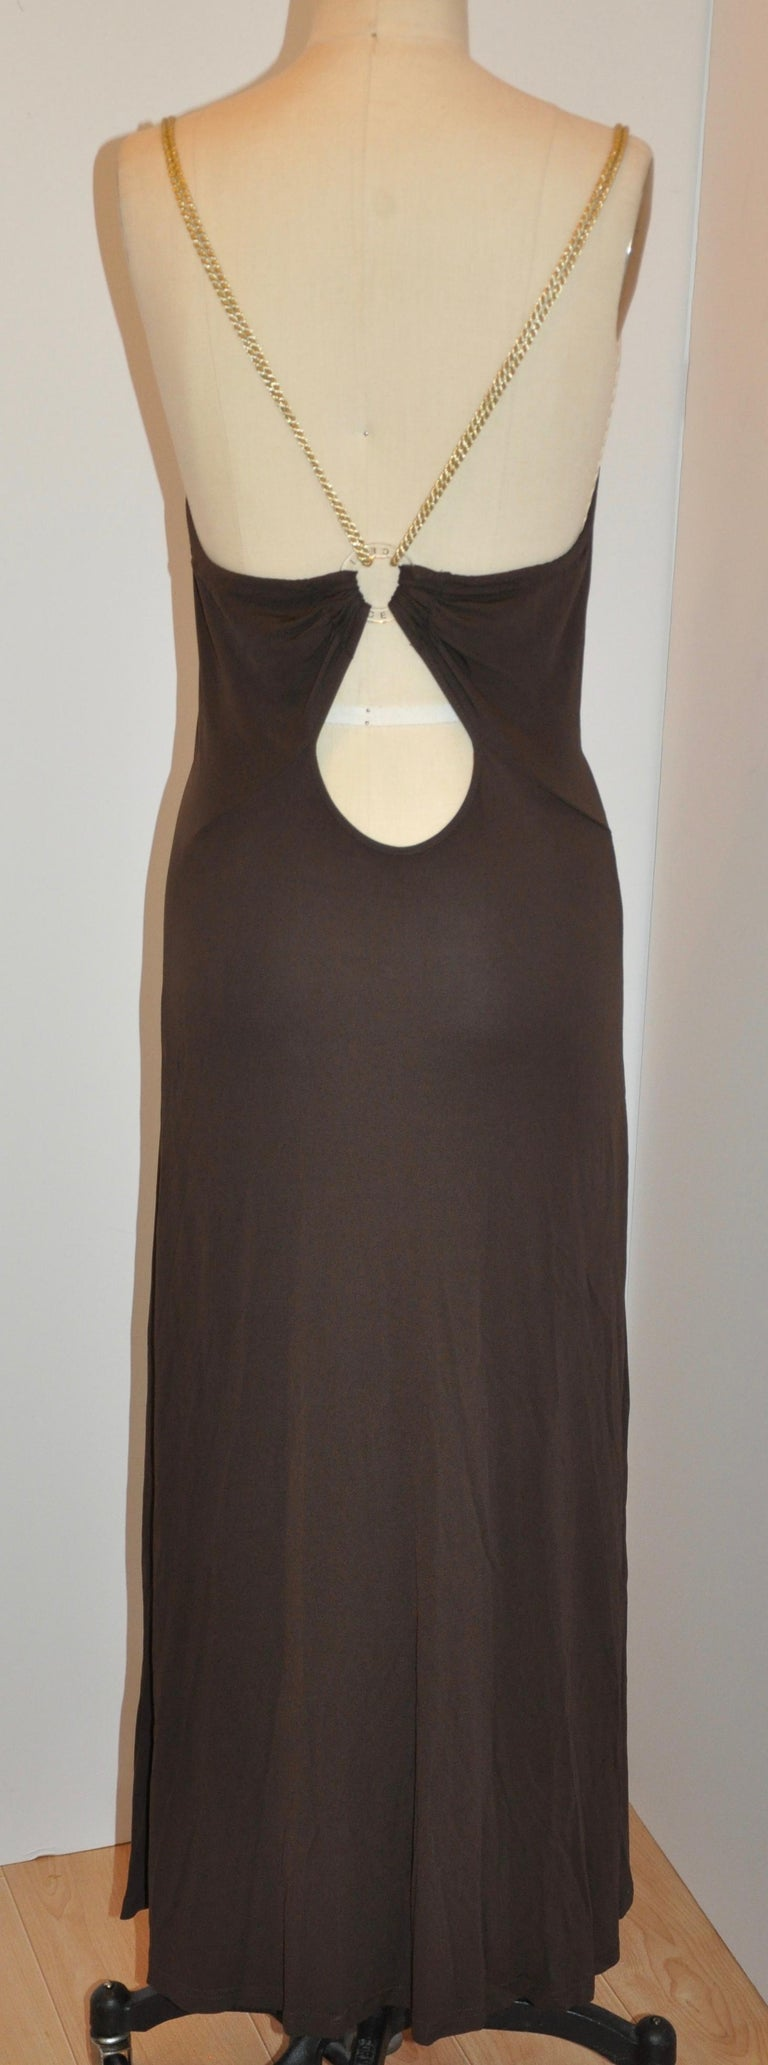 Celine Coco-Brown Silk-Blend Jersey Low-Cut Form-Fitting Maxi Dress In Good Condition For Sale In New York, NY